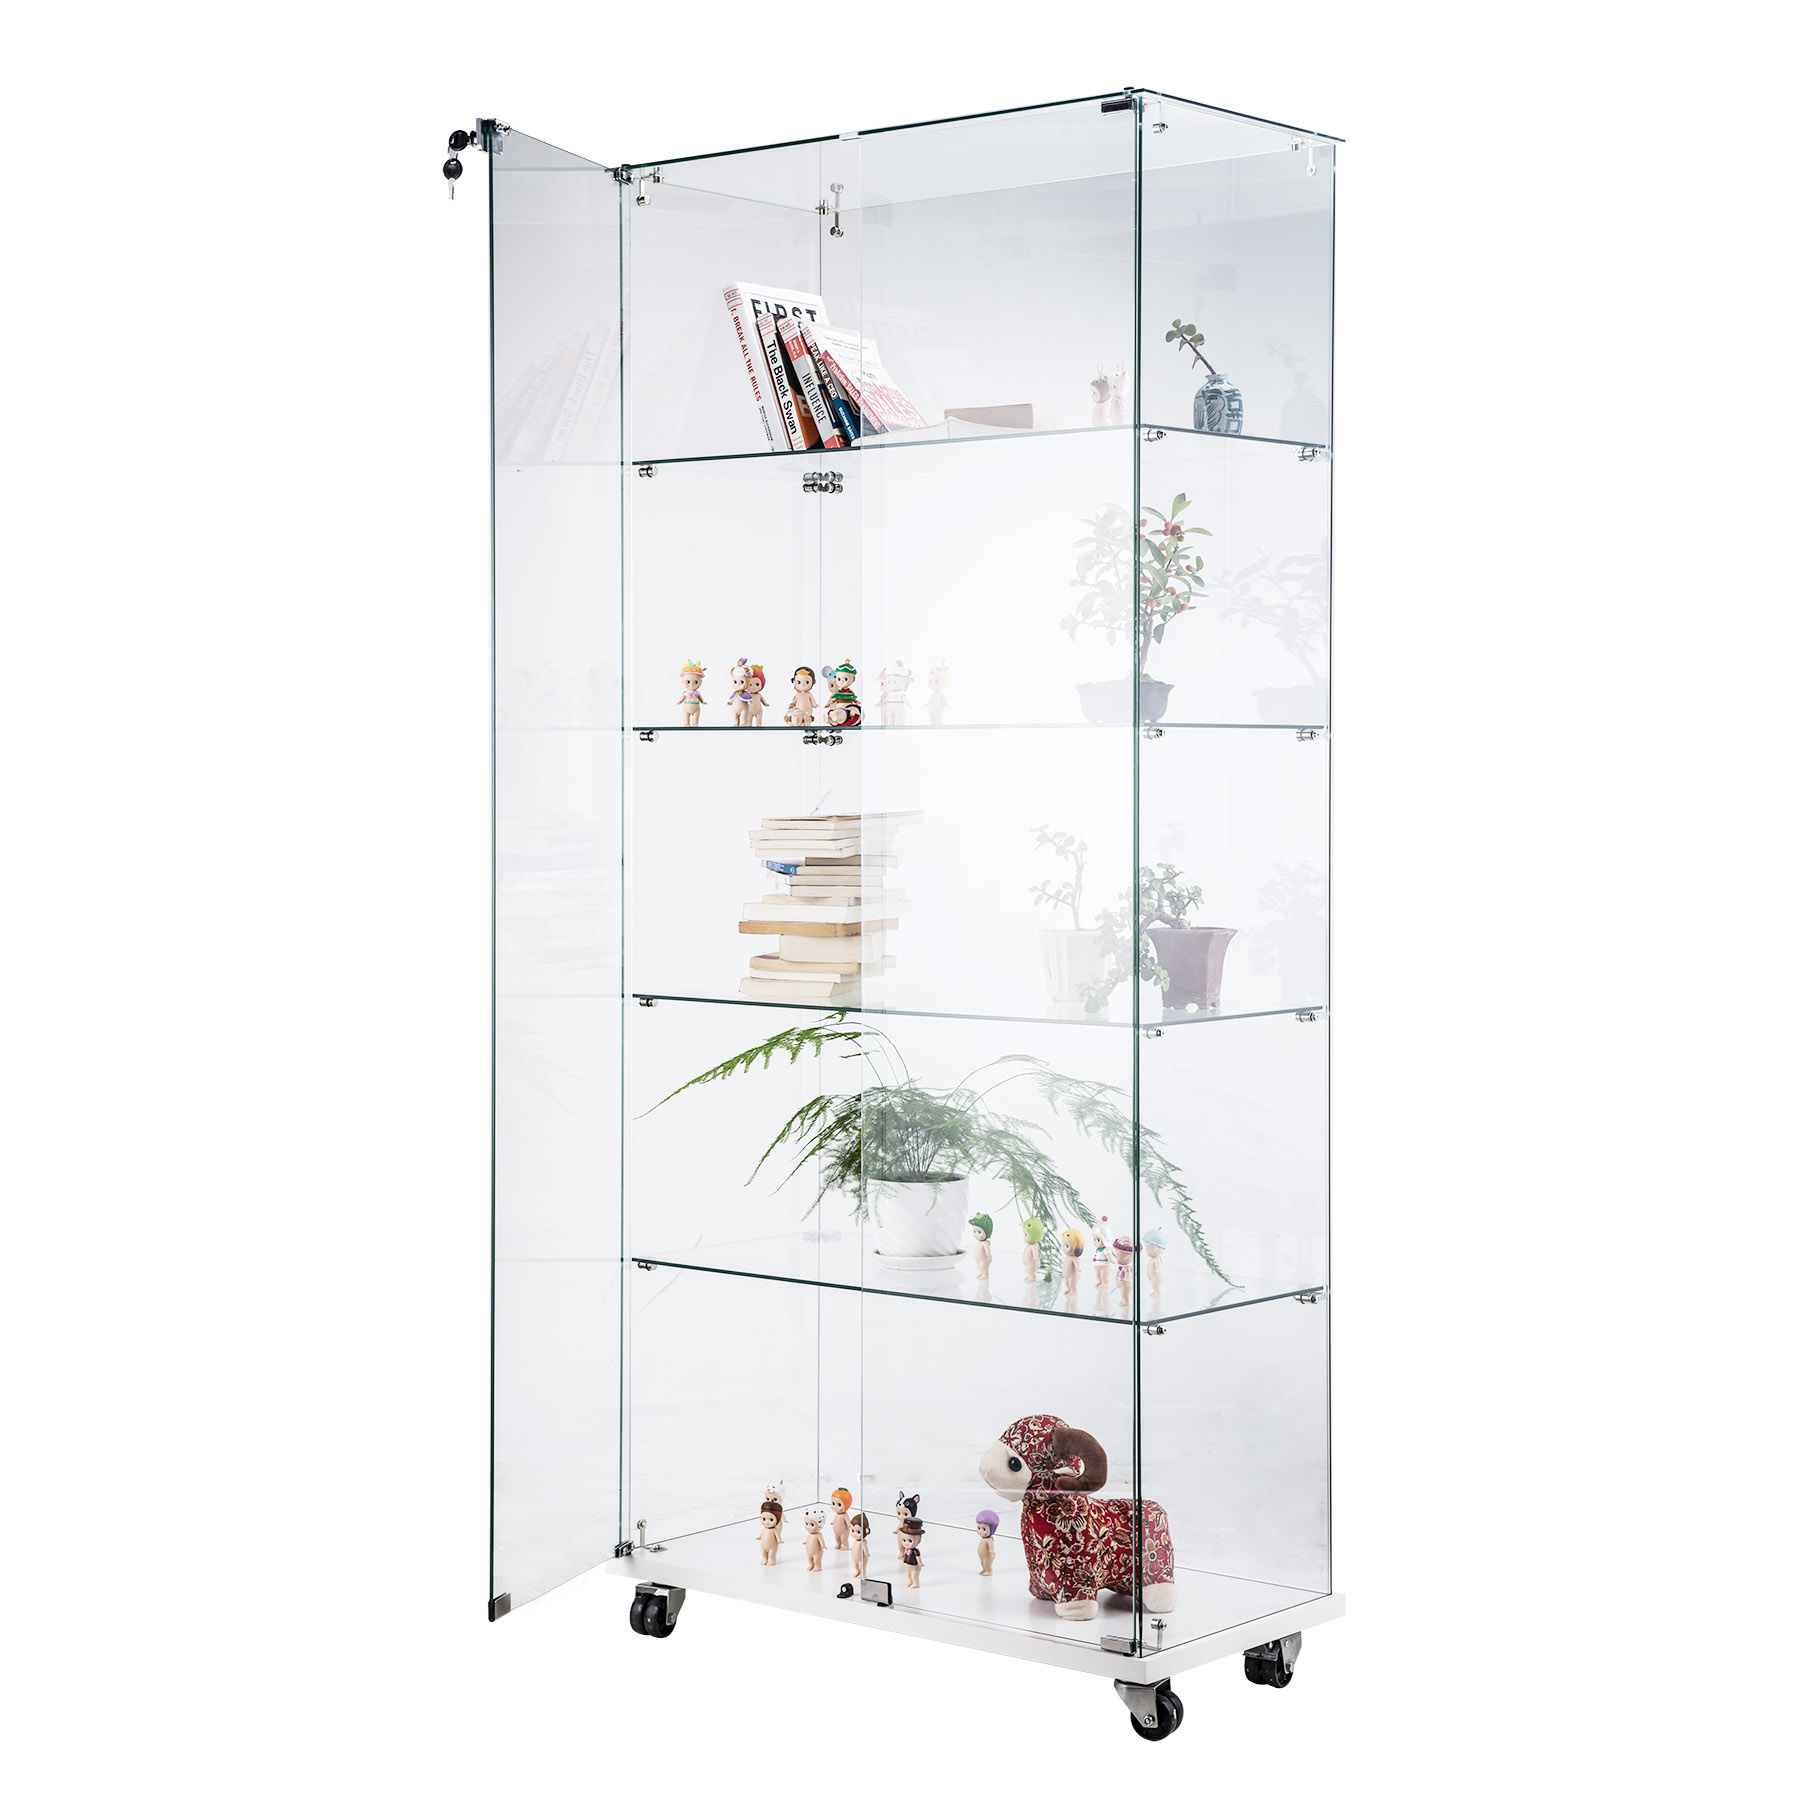 Pinty Tempered Glass Curio Display Cabinets Showcase Free...